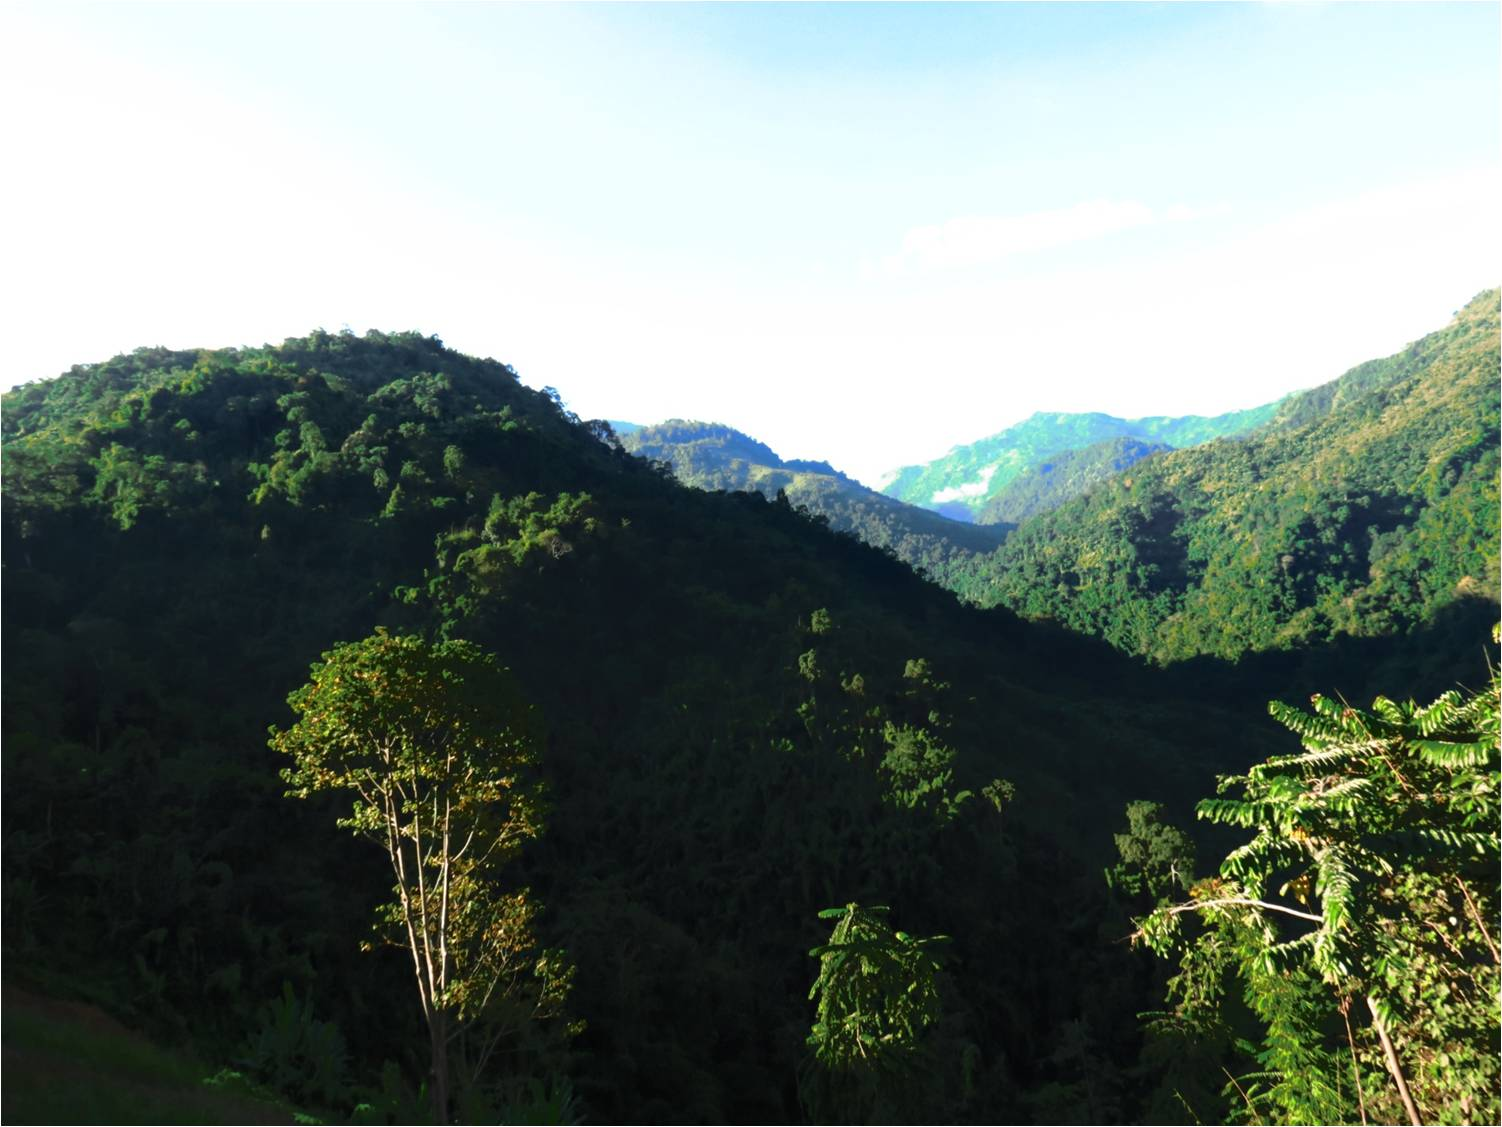 Forests of the Yaongyimchen Community Biodiversity Conservation Area (YCBCA) set aside by the community for conservation. Photo by Nuklu Phom.